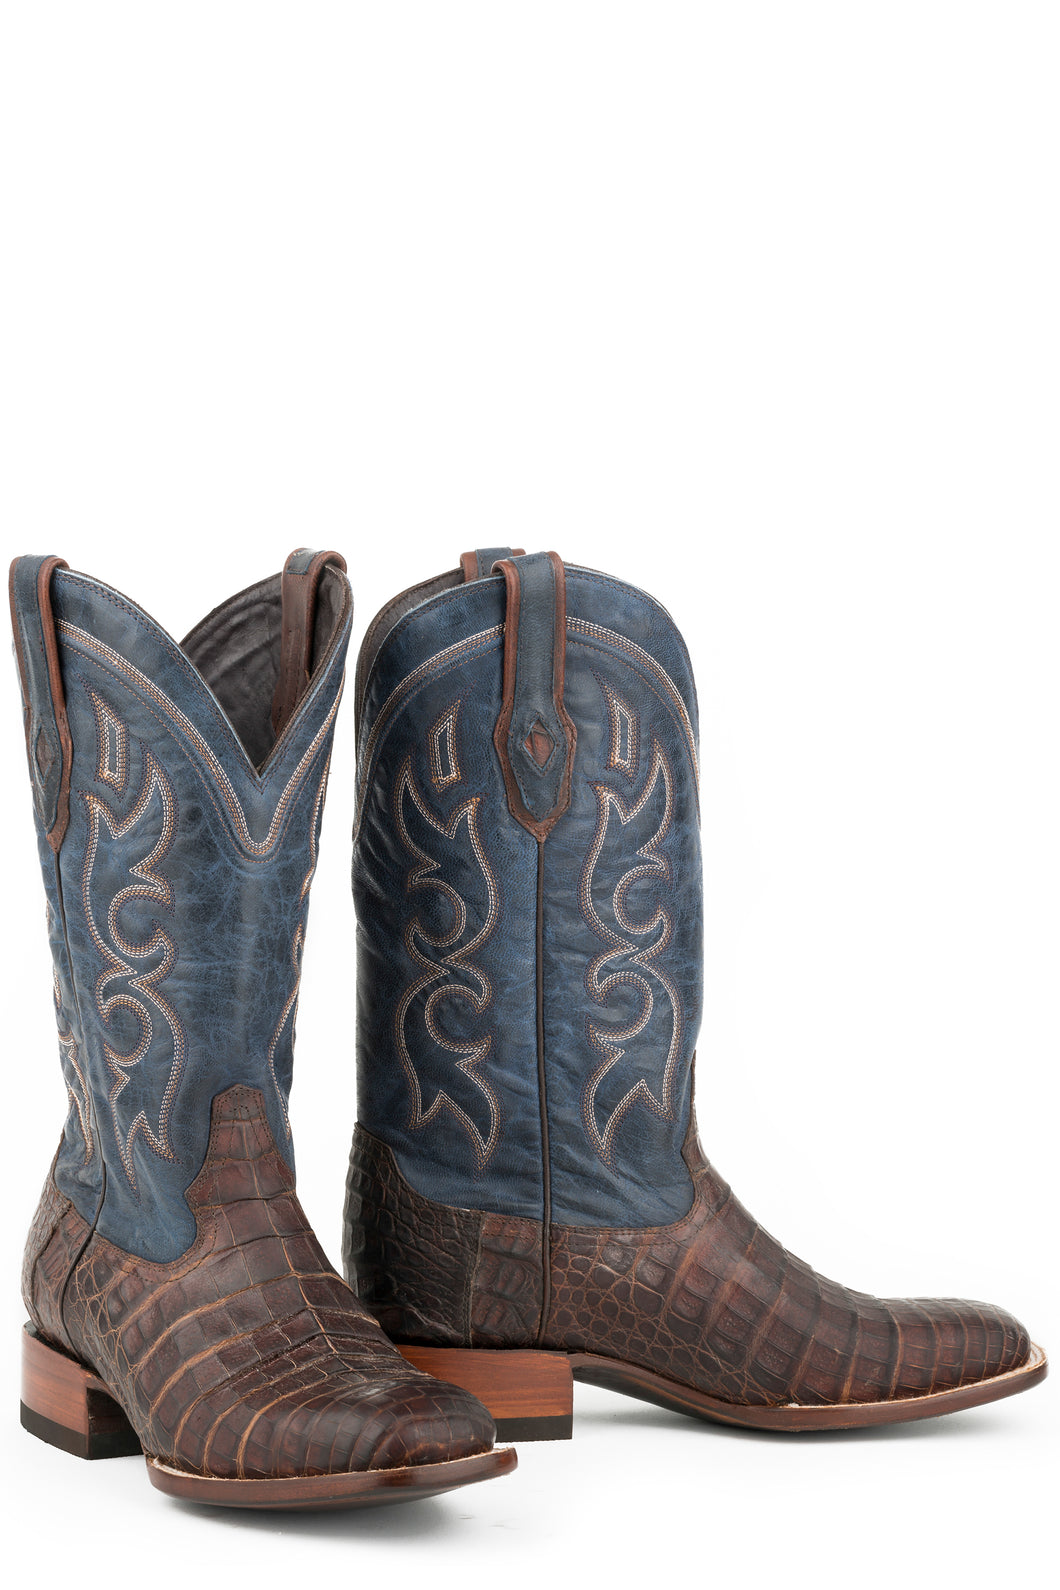 Bozeman Boot Mens Boot Brown Oiled Caiman Belly Vamp 13